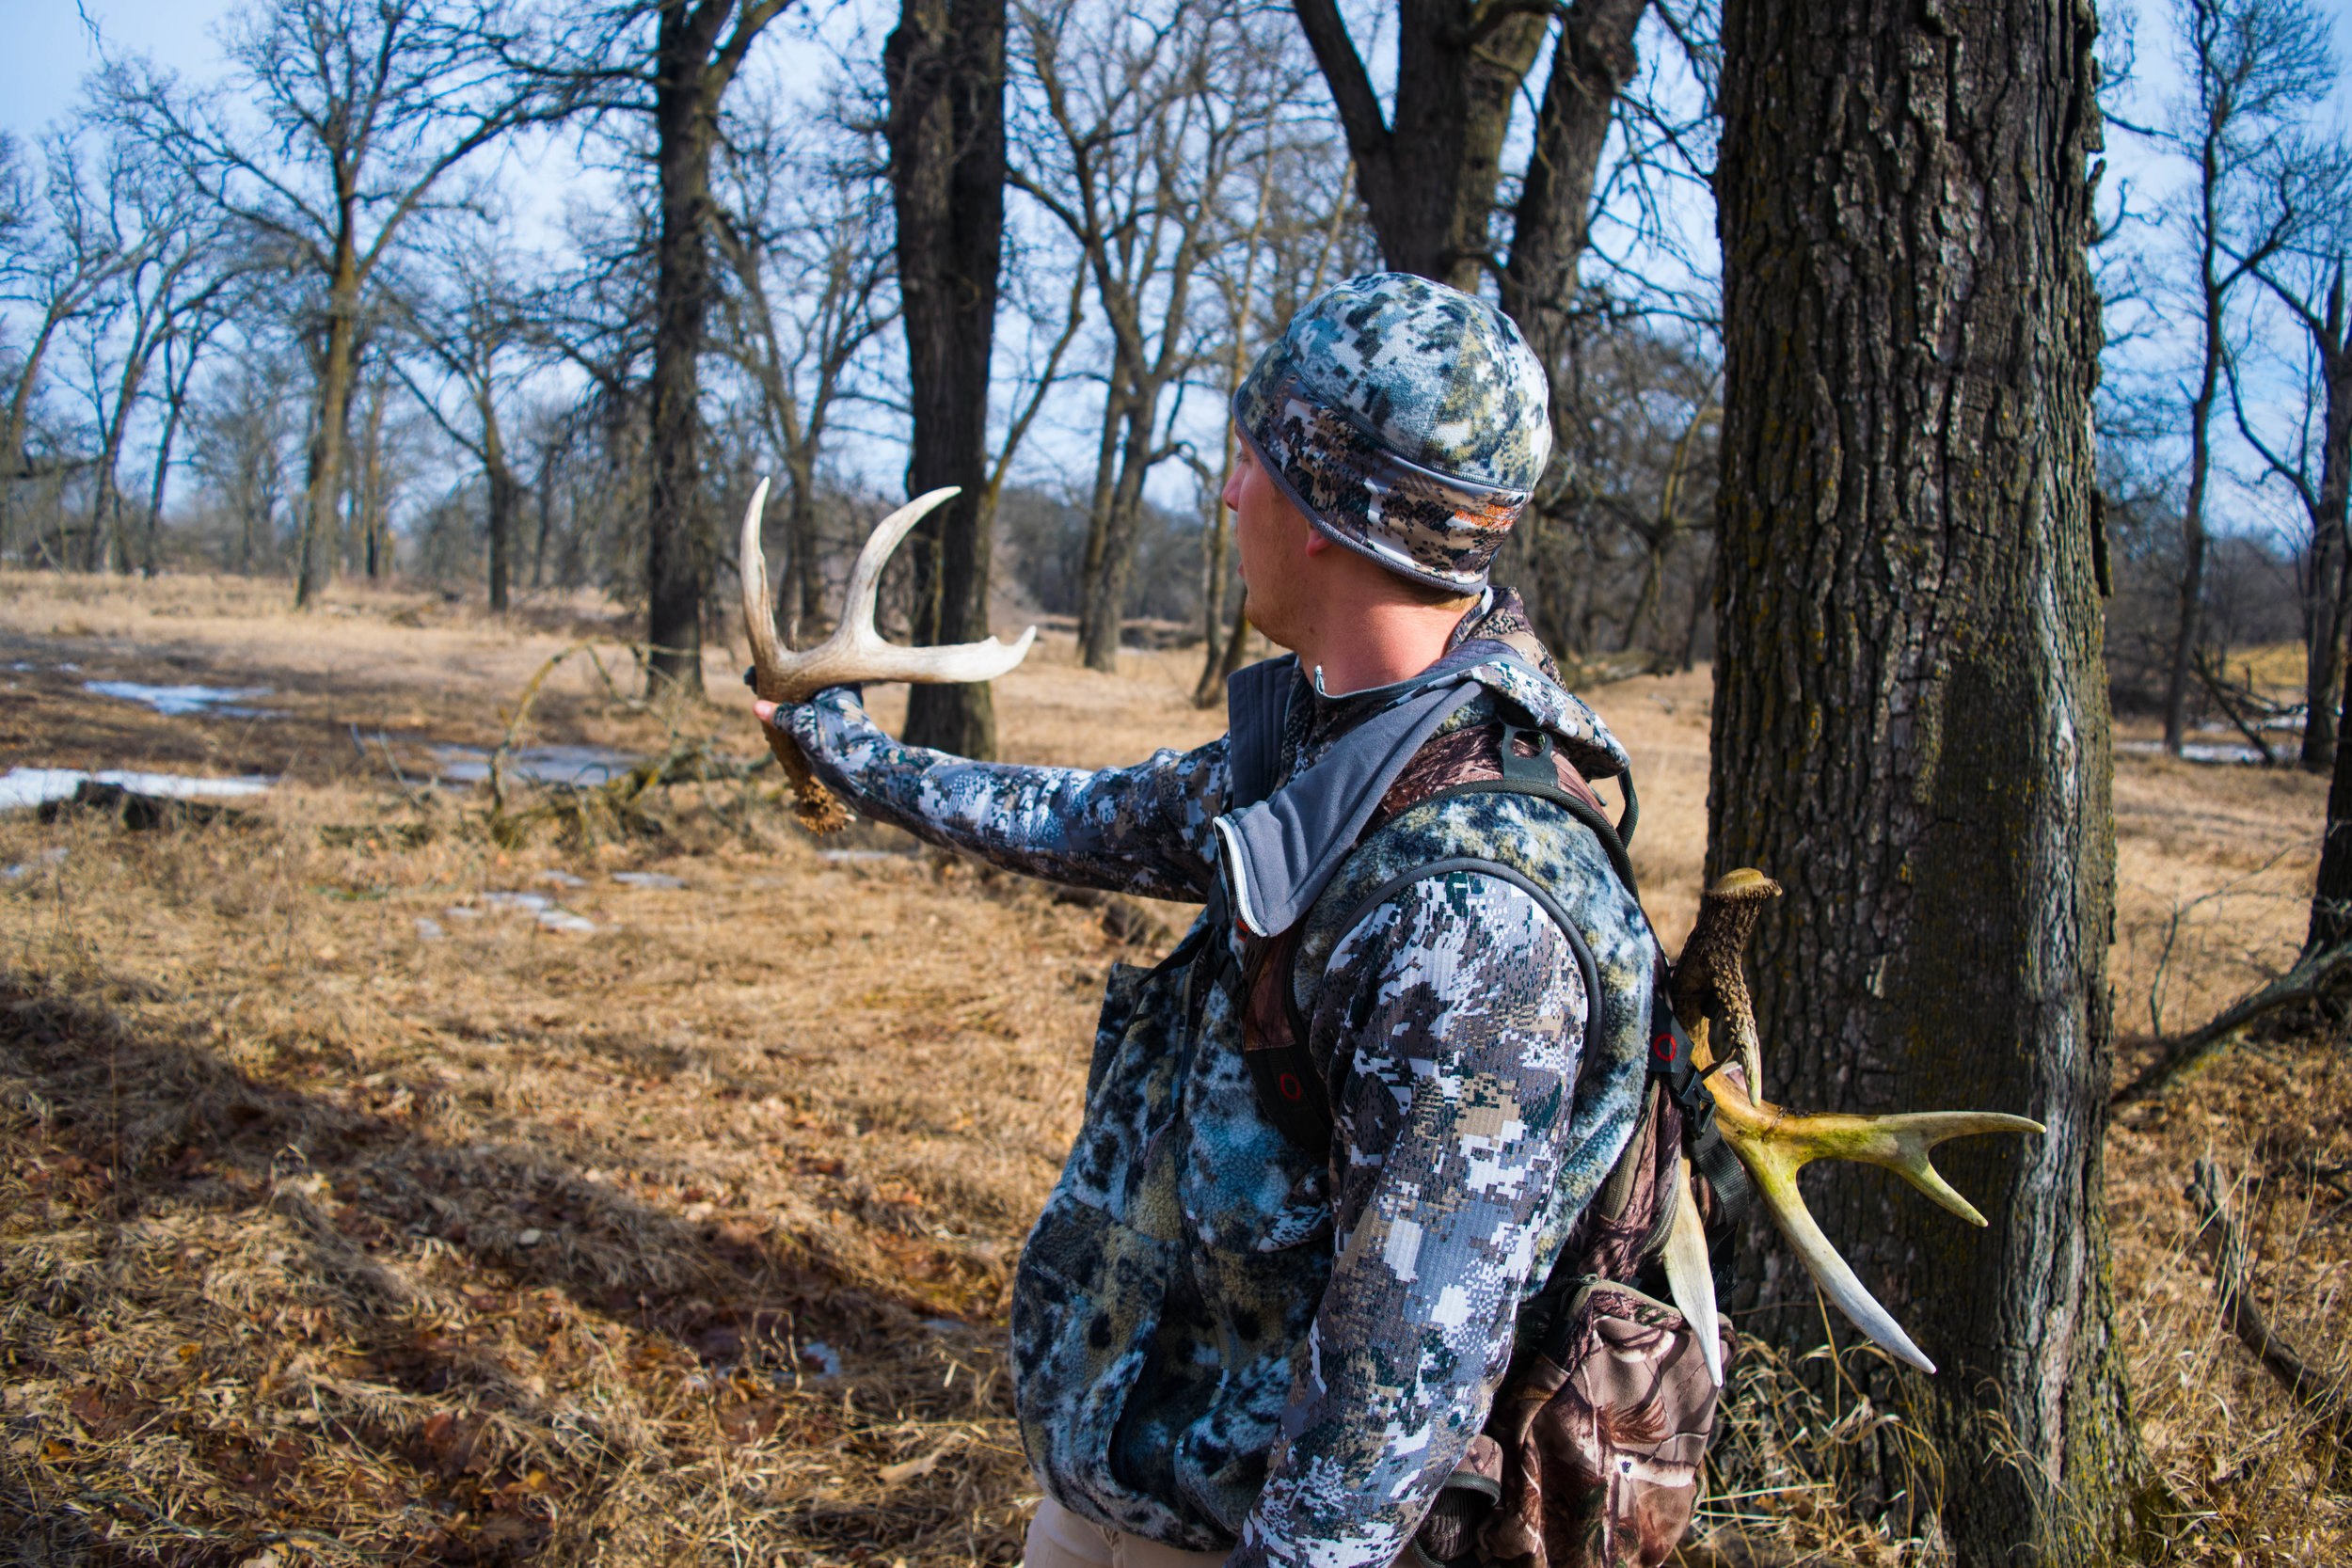 2017 was my best shed hunting season to date as I reeled in 19 antlers.